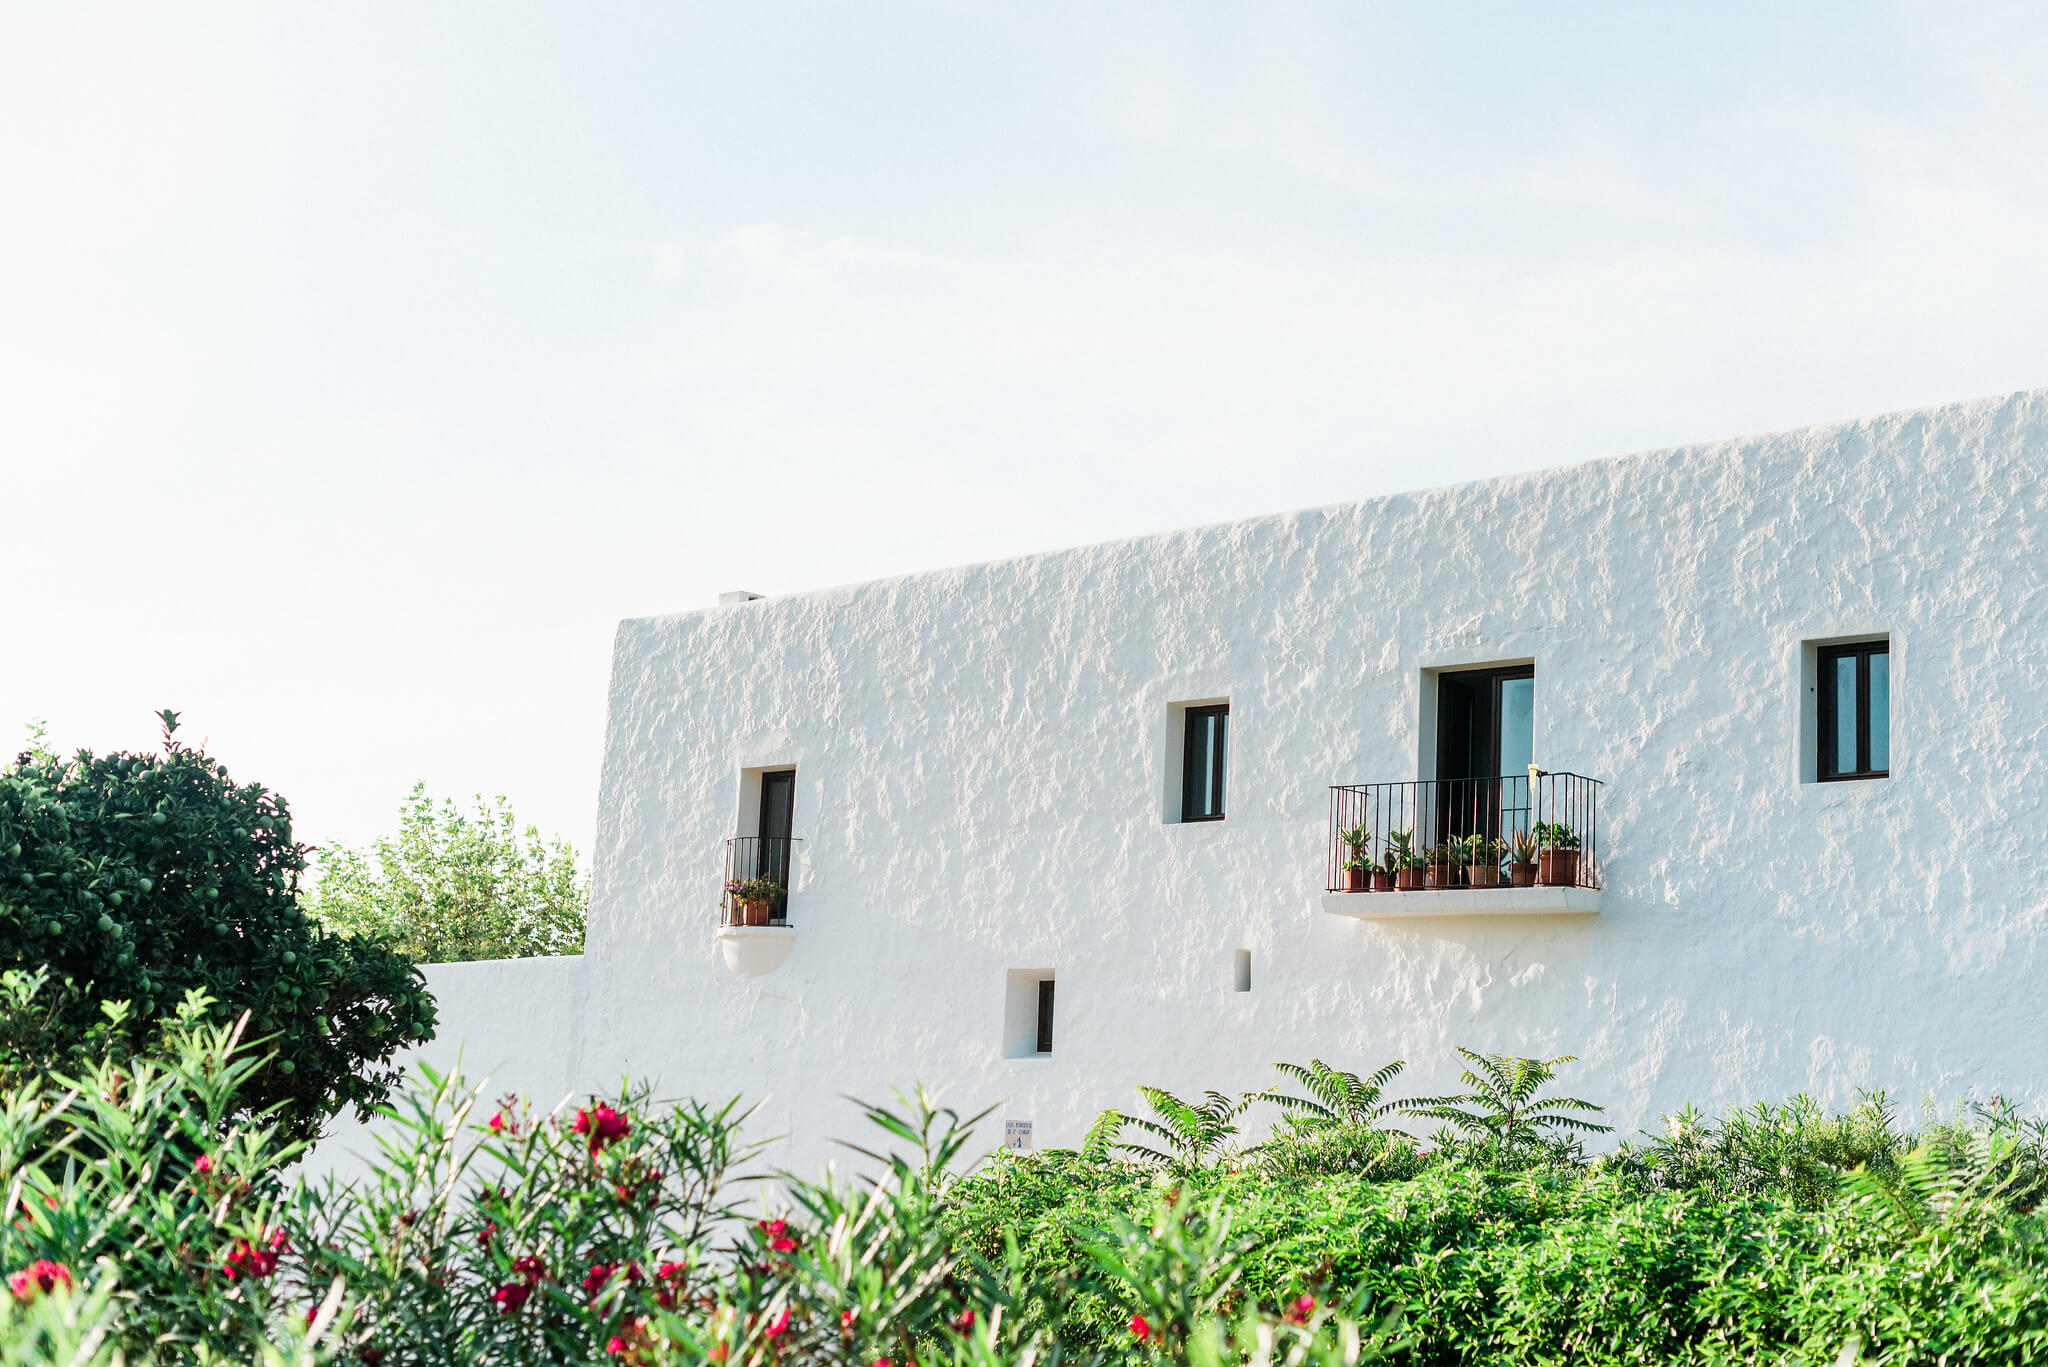 https://www.white-ibiza.com/wp-content/uploads/2020/05/white-ibiza-villas-where-to-buy-san-carlos-05.jpg